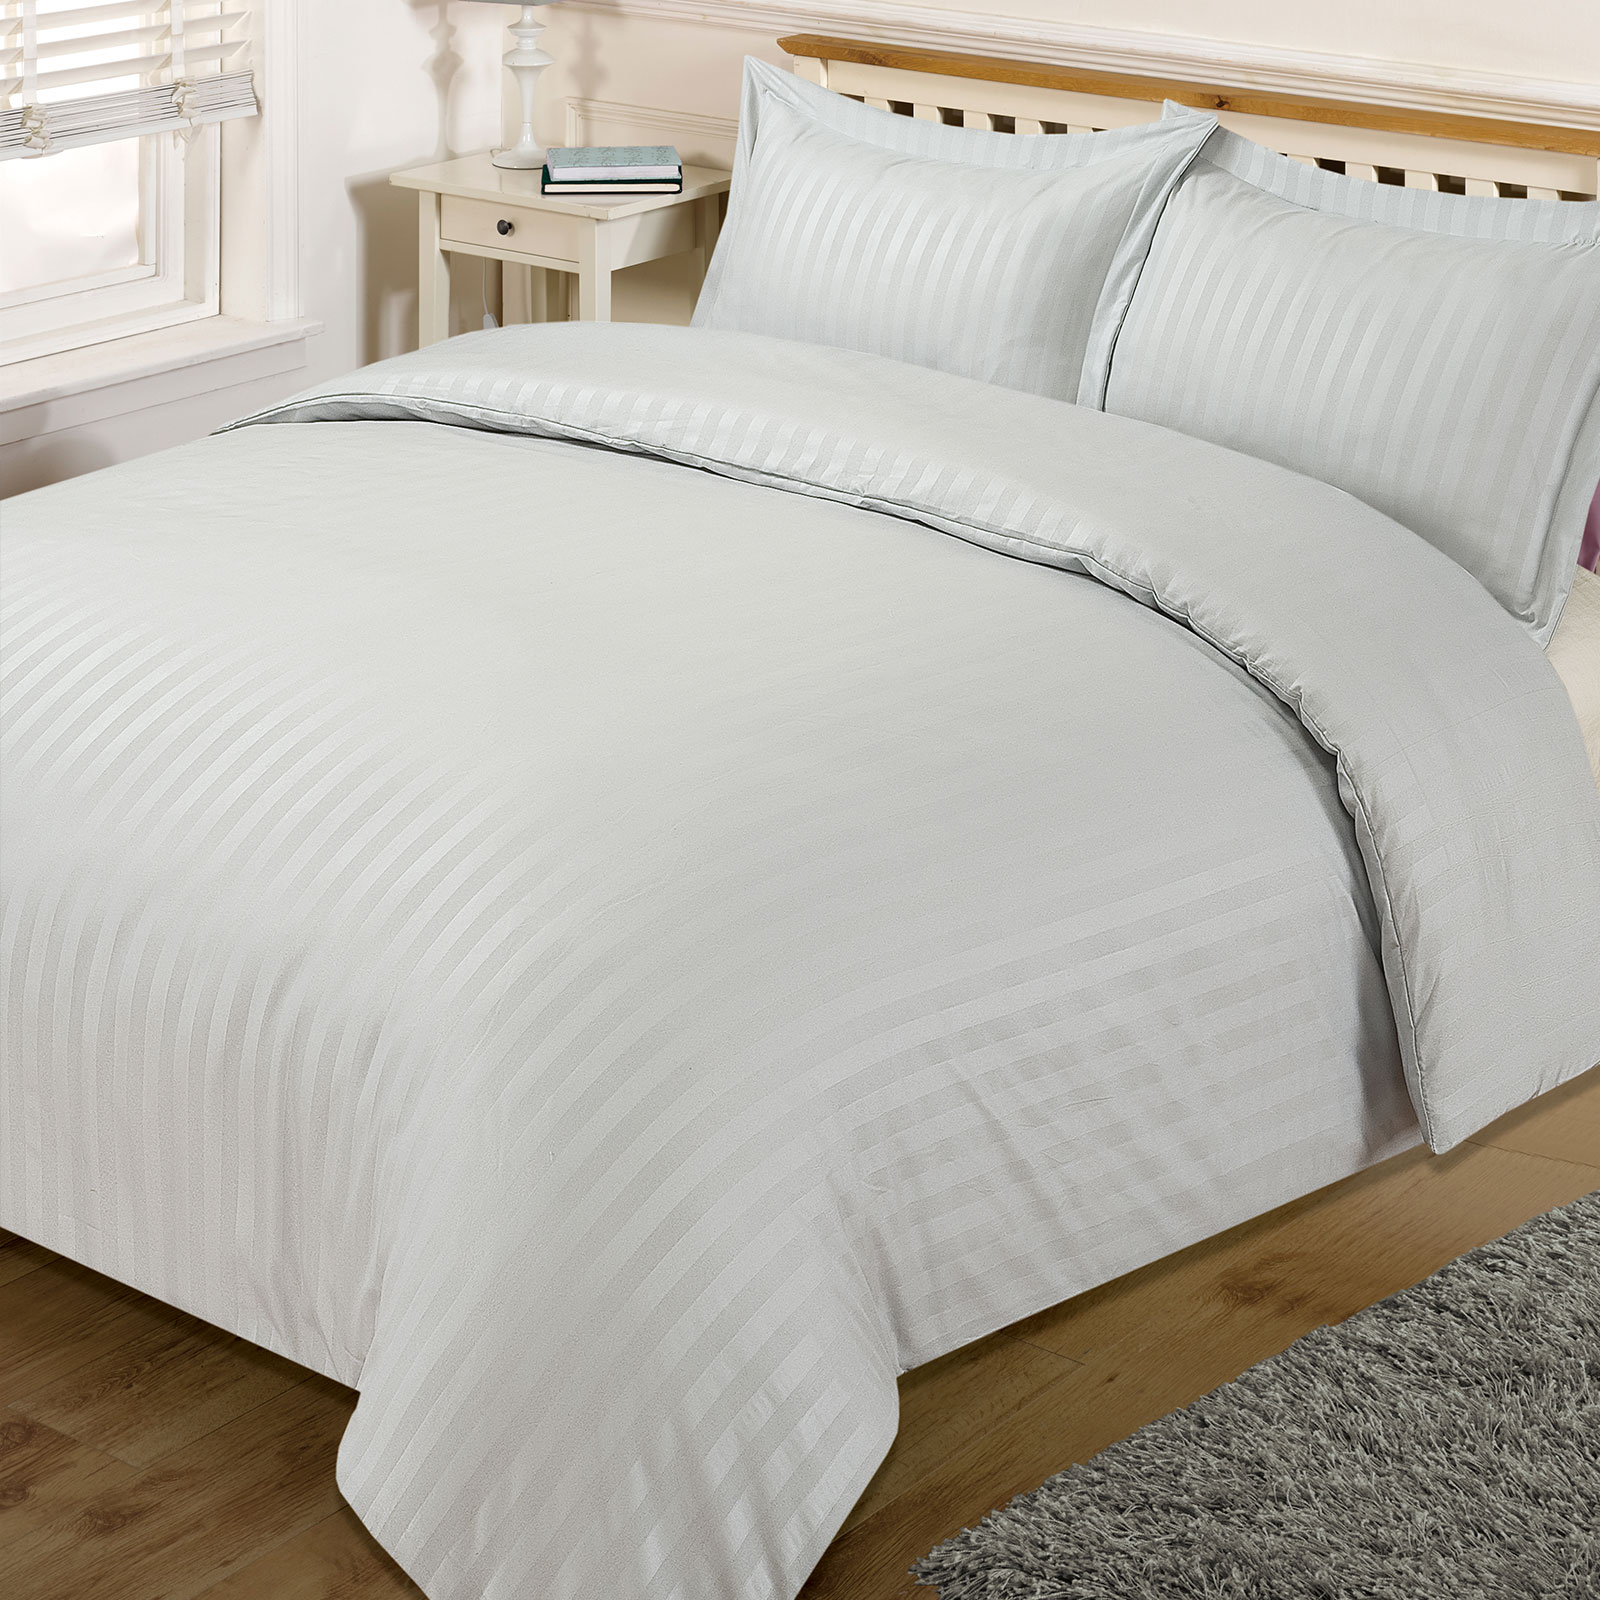 Satin-Stripe-Quilt-Duvet-Cover-with-Pillow-Case-Bedding-Set-Single-Double-King